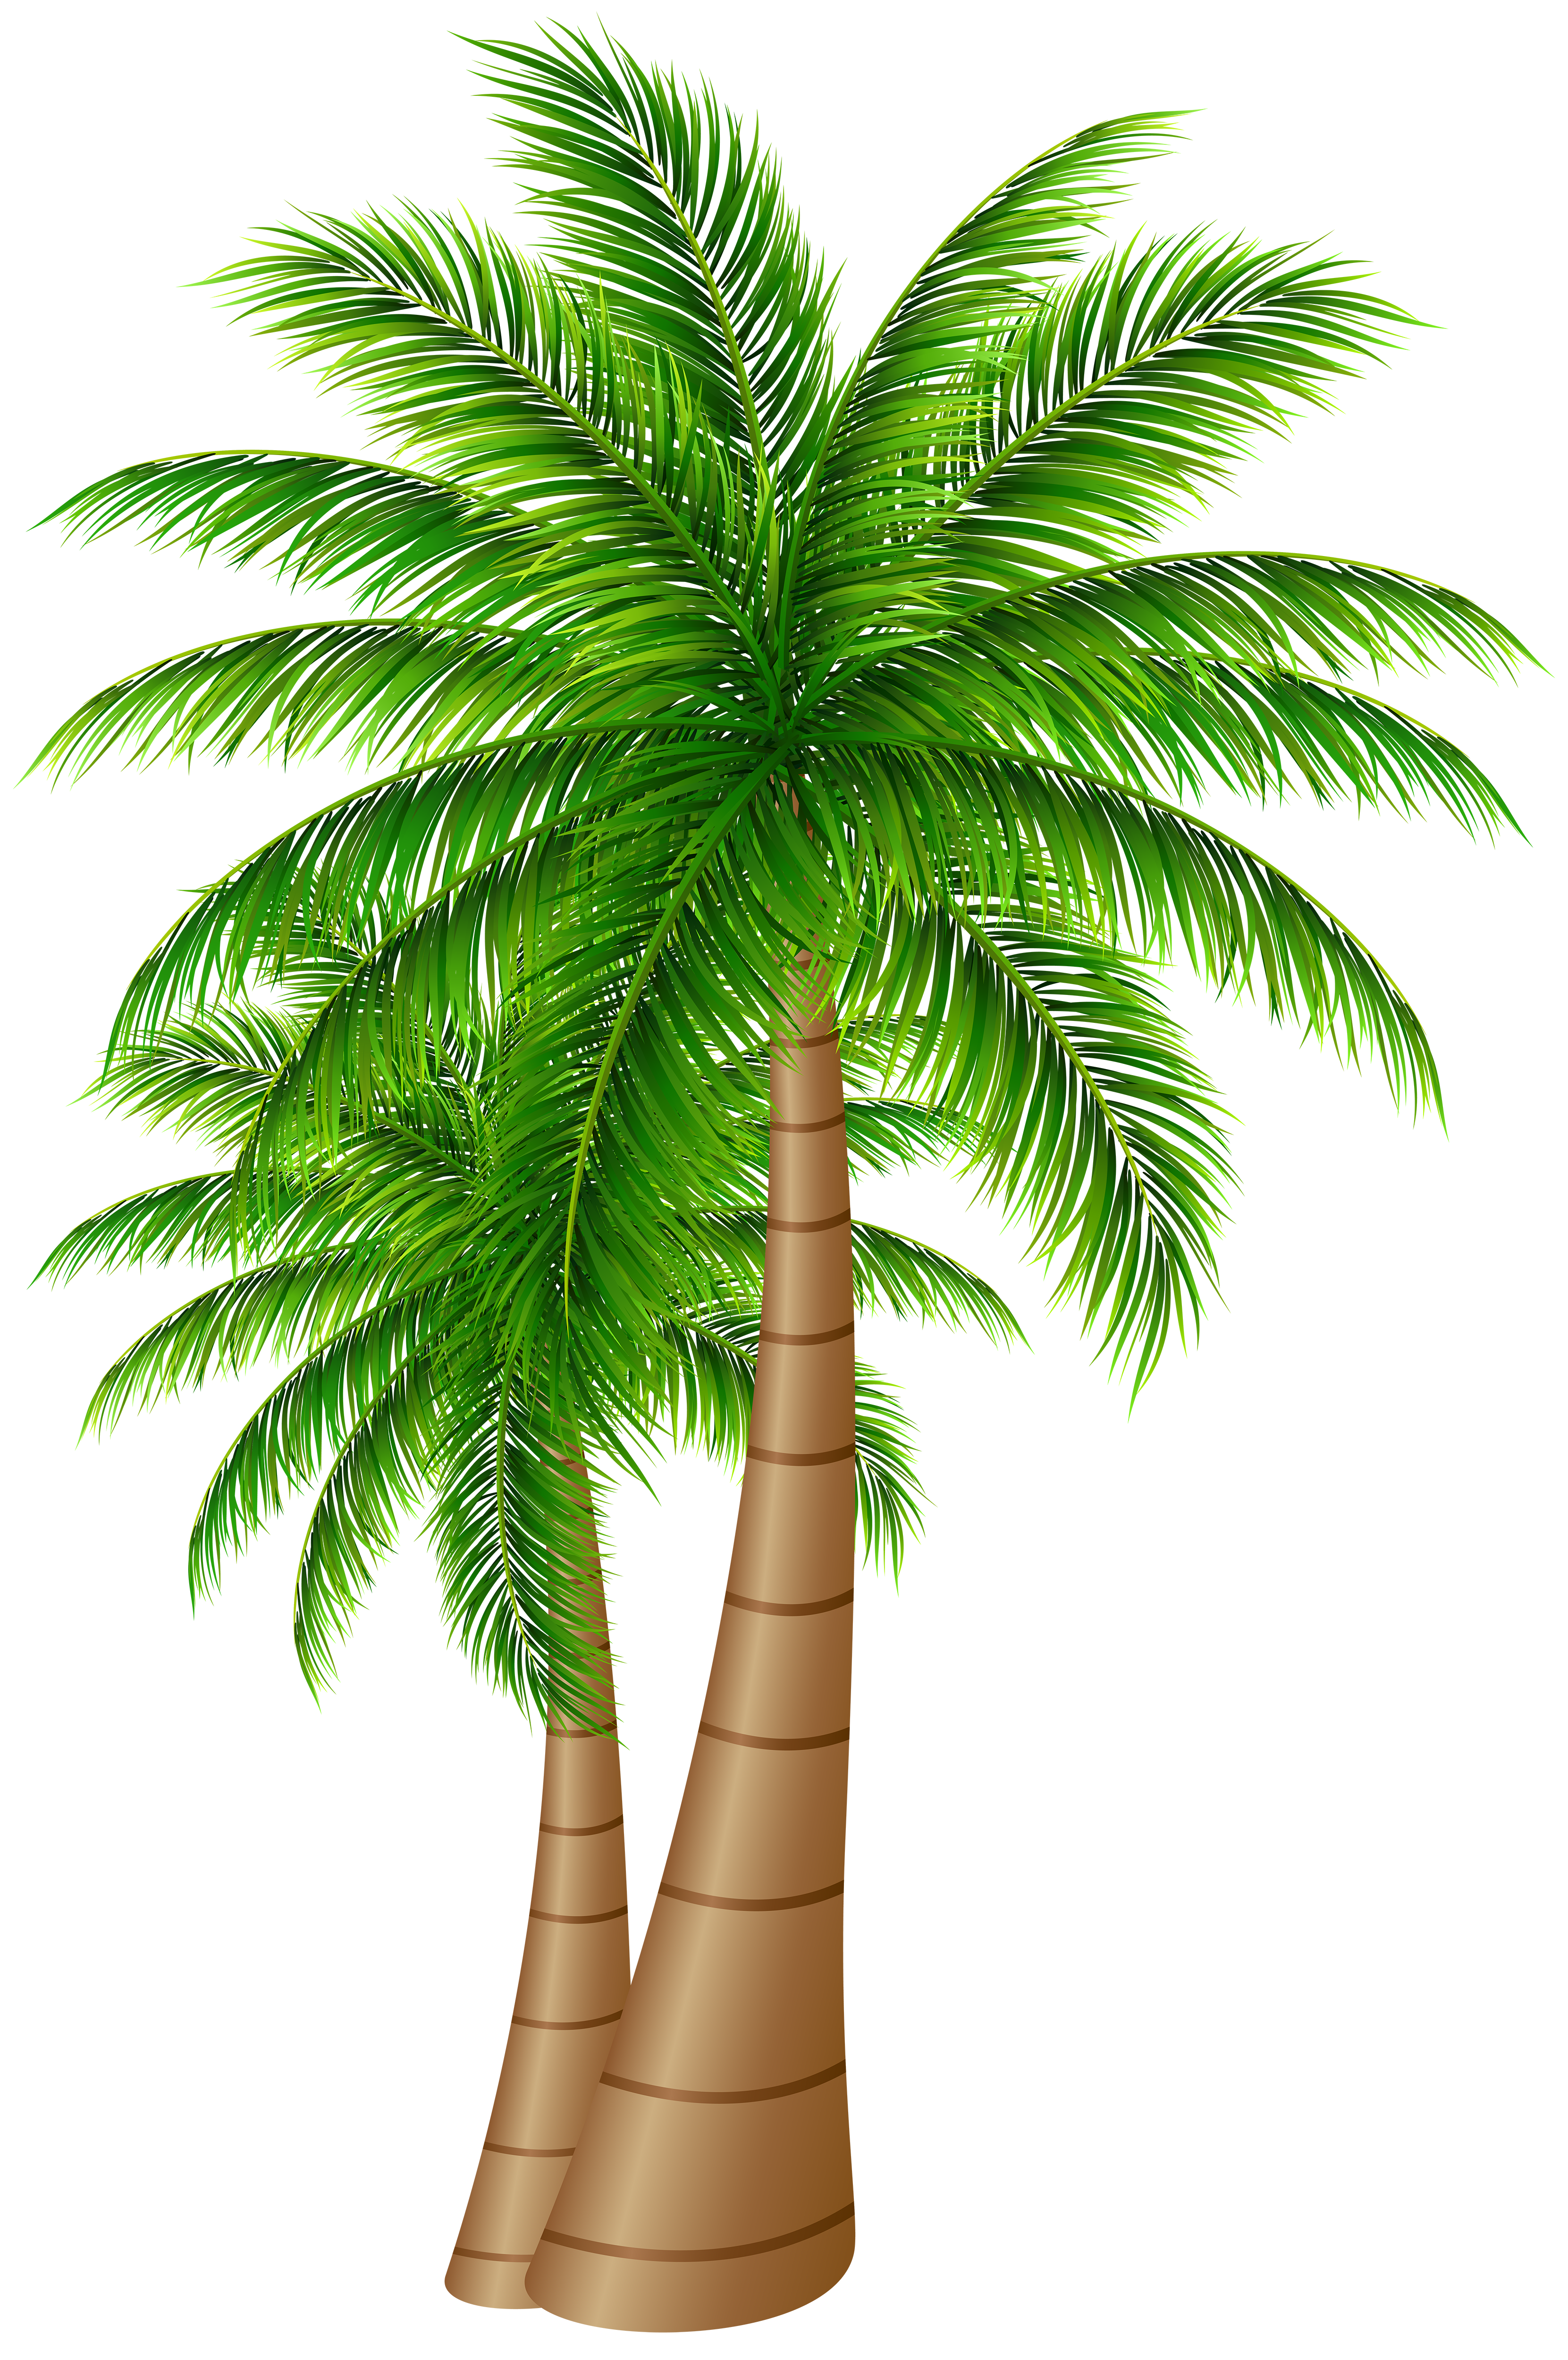 Date palm tree png. Trees large clip art